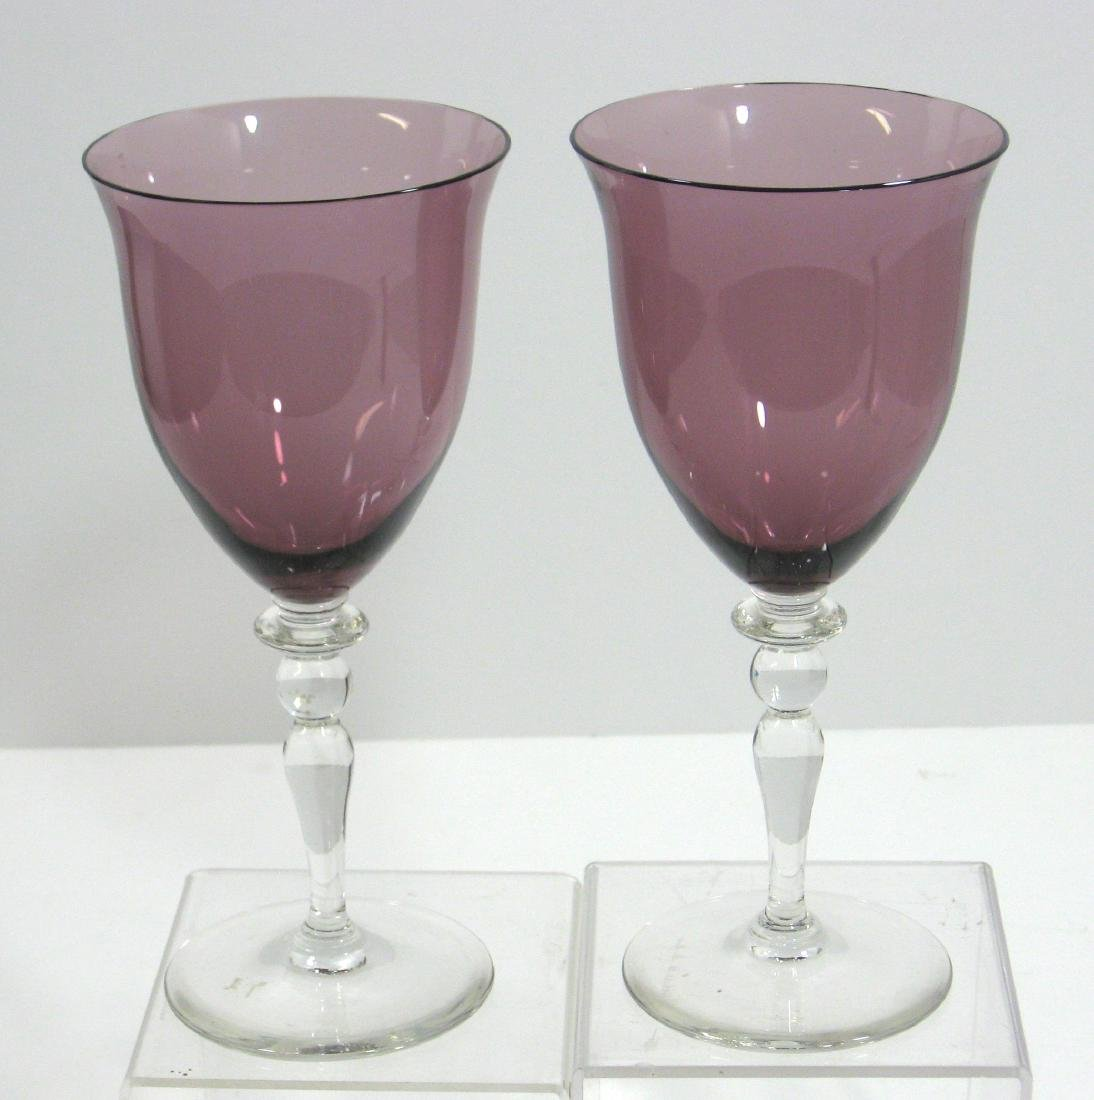 Two Steuben experimental goblets